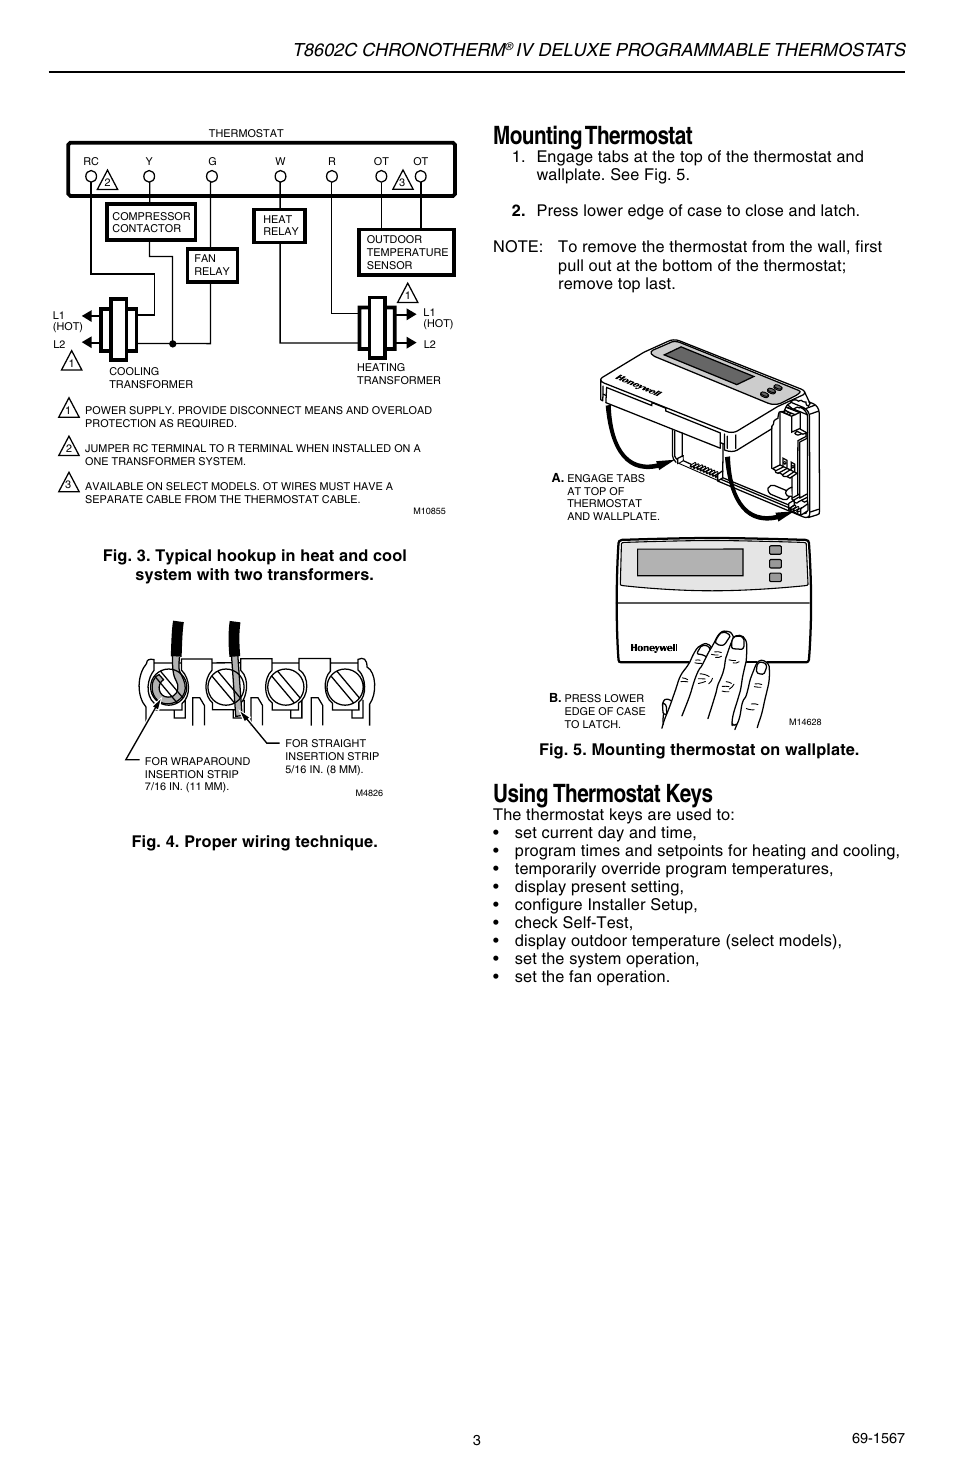 Using Thermostat Keys Mounting T8602c Chronotherm Heat And Cool 2 Transformers Honeywell Iv User Manual Page 3 12